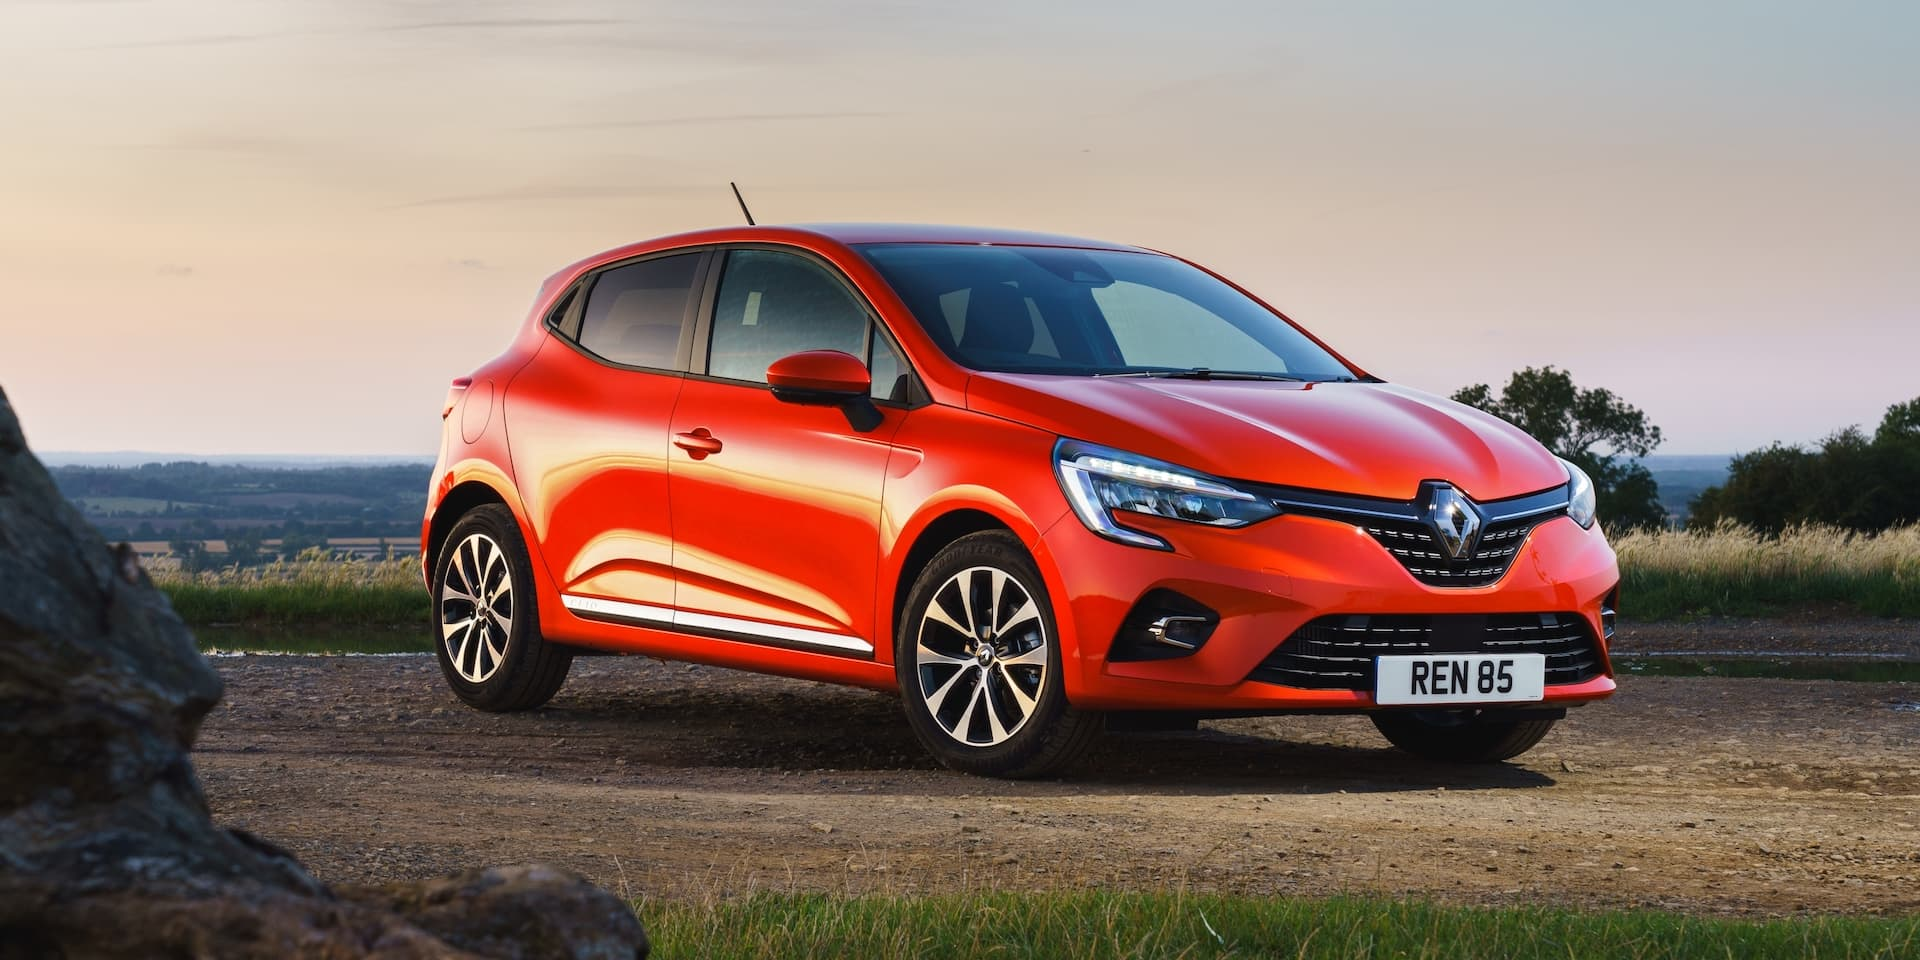 Renault Clio (2019 onwards) - Expert Rating